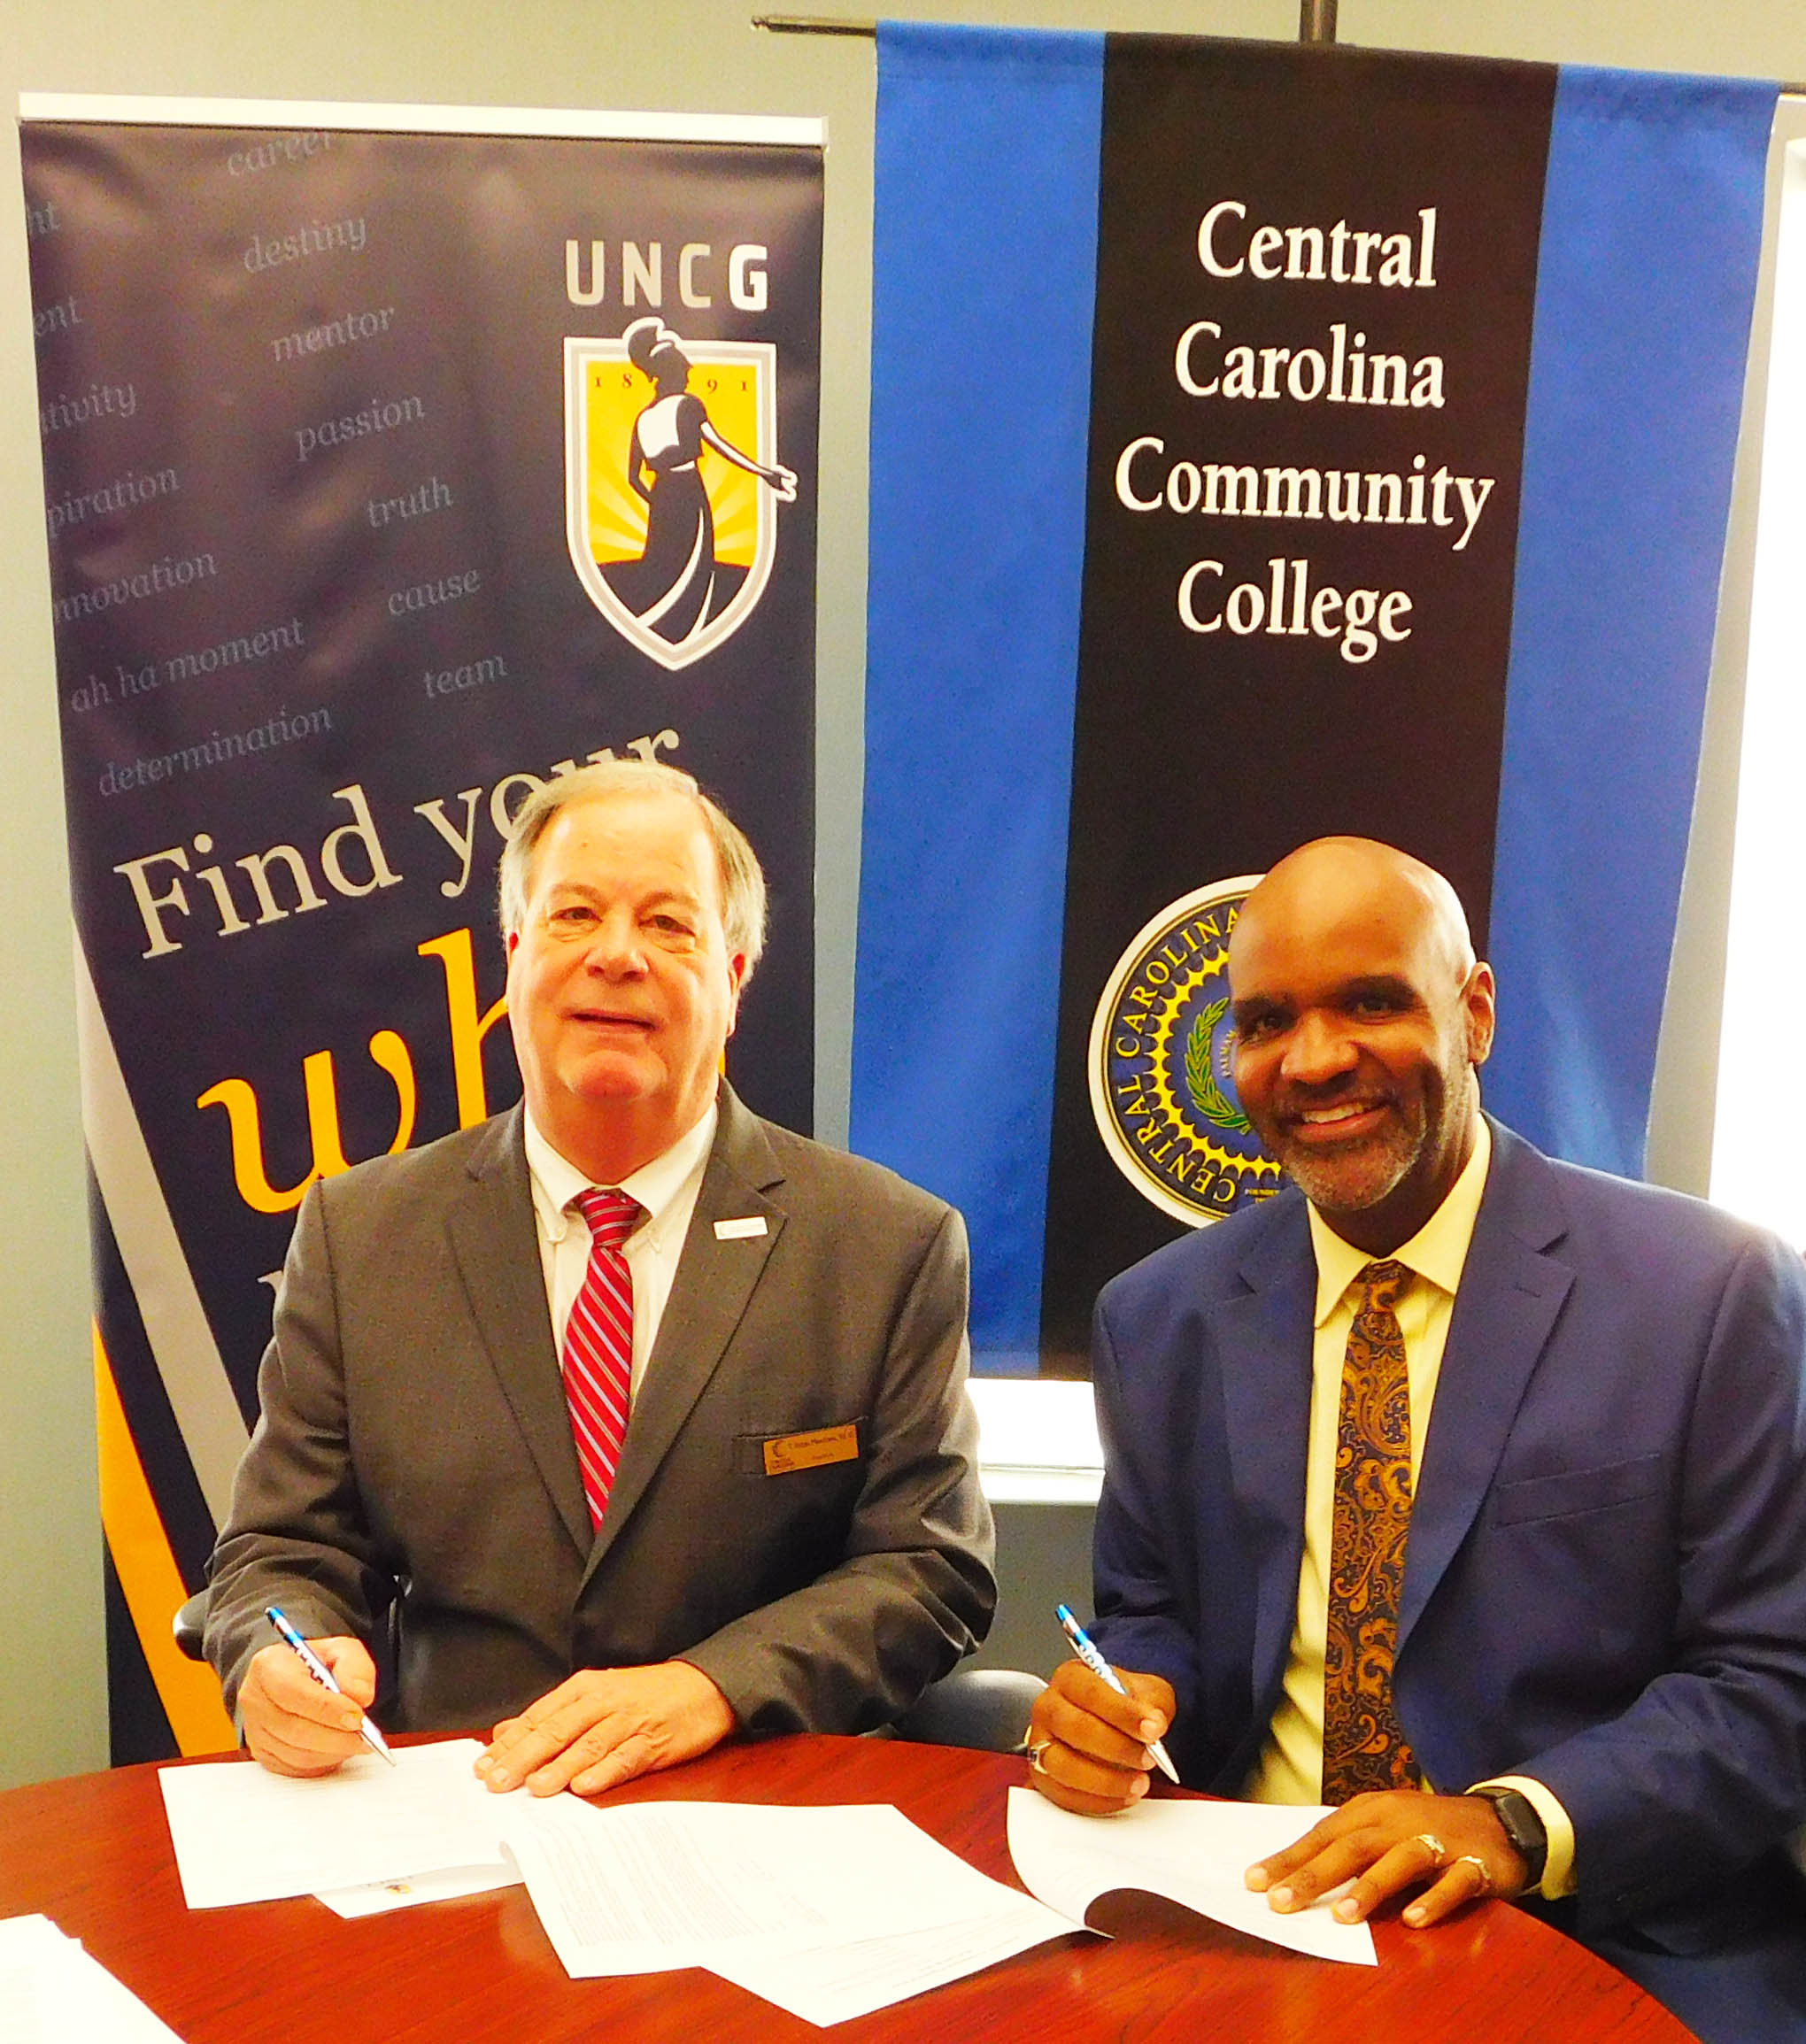 Click to enlarge,  Central Carolina Community College and The University of North Carolina at Greensboro have agreed to a new co-admission program called CCCC Spartan Passage. Signing the agreement are Dr. T. Eston Marchant (left), CCCC President, and Dr. Bryan Terry (right), UNCG Vice Chancellor for Enrollment Management.